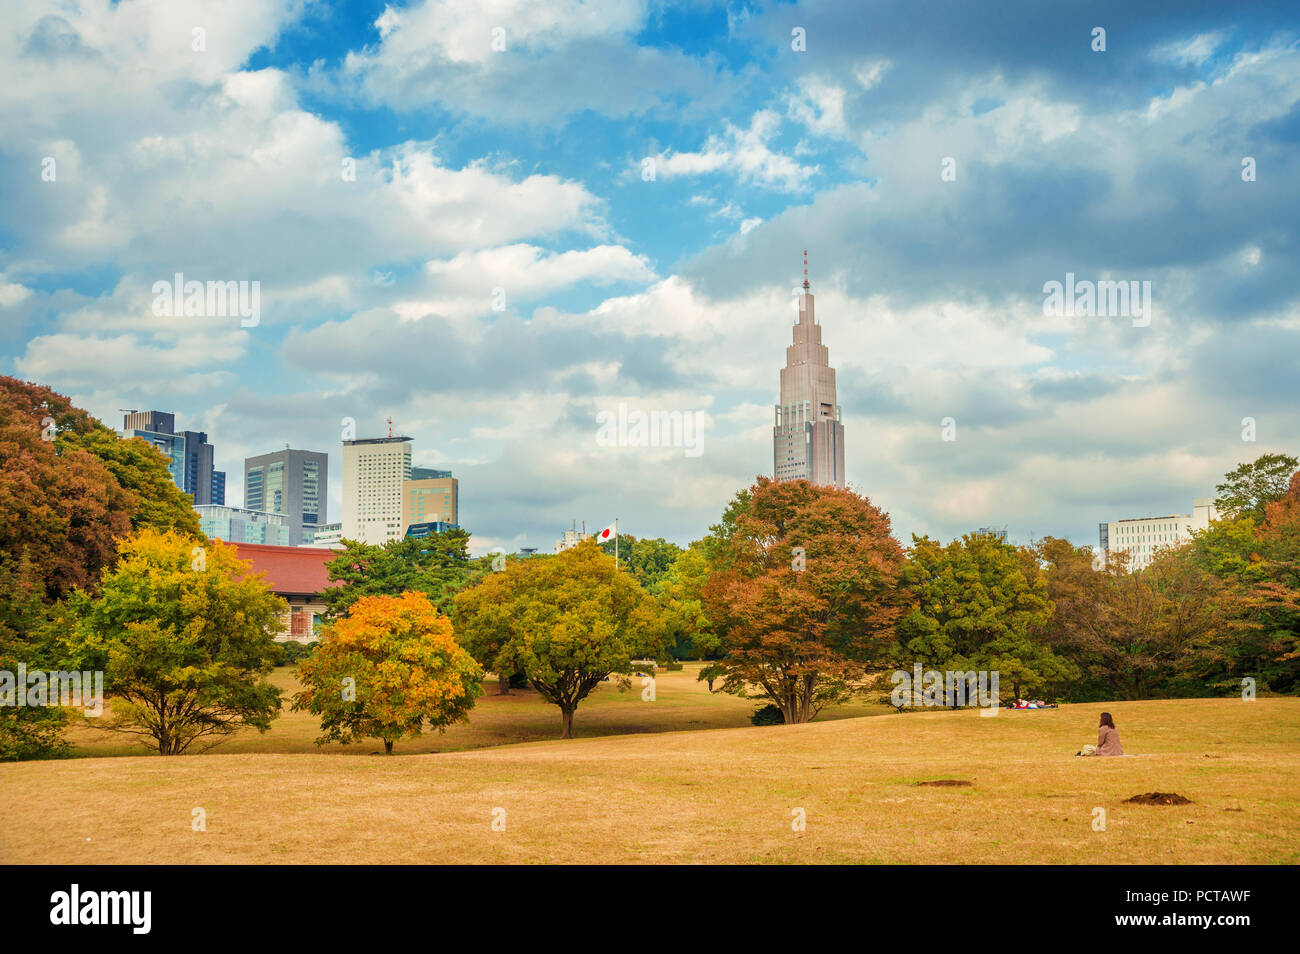 Nature and urban, environment in Tokyo. Shinjuku district skyscrapers seen from Meiji Jingu public park in autumn - Stock Image